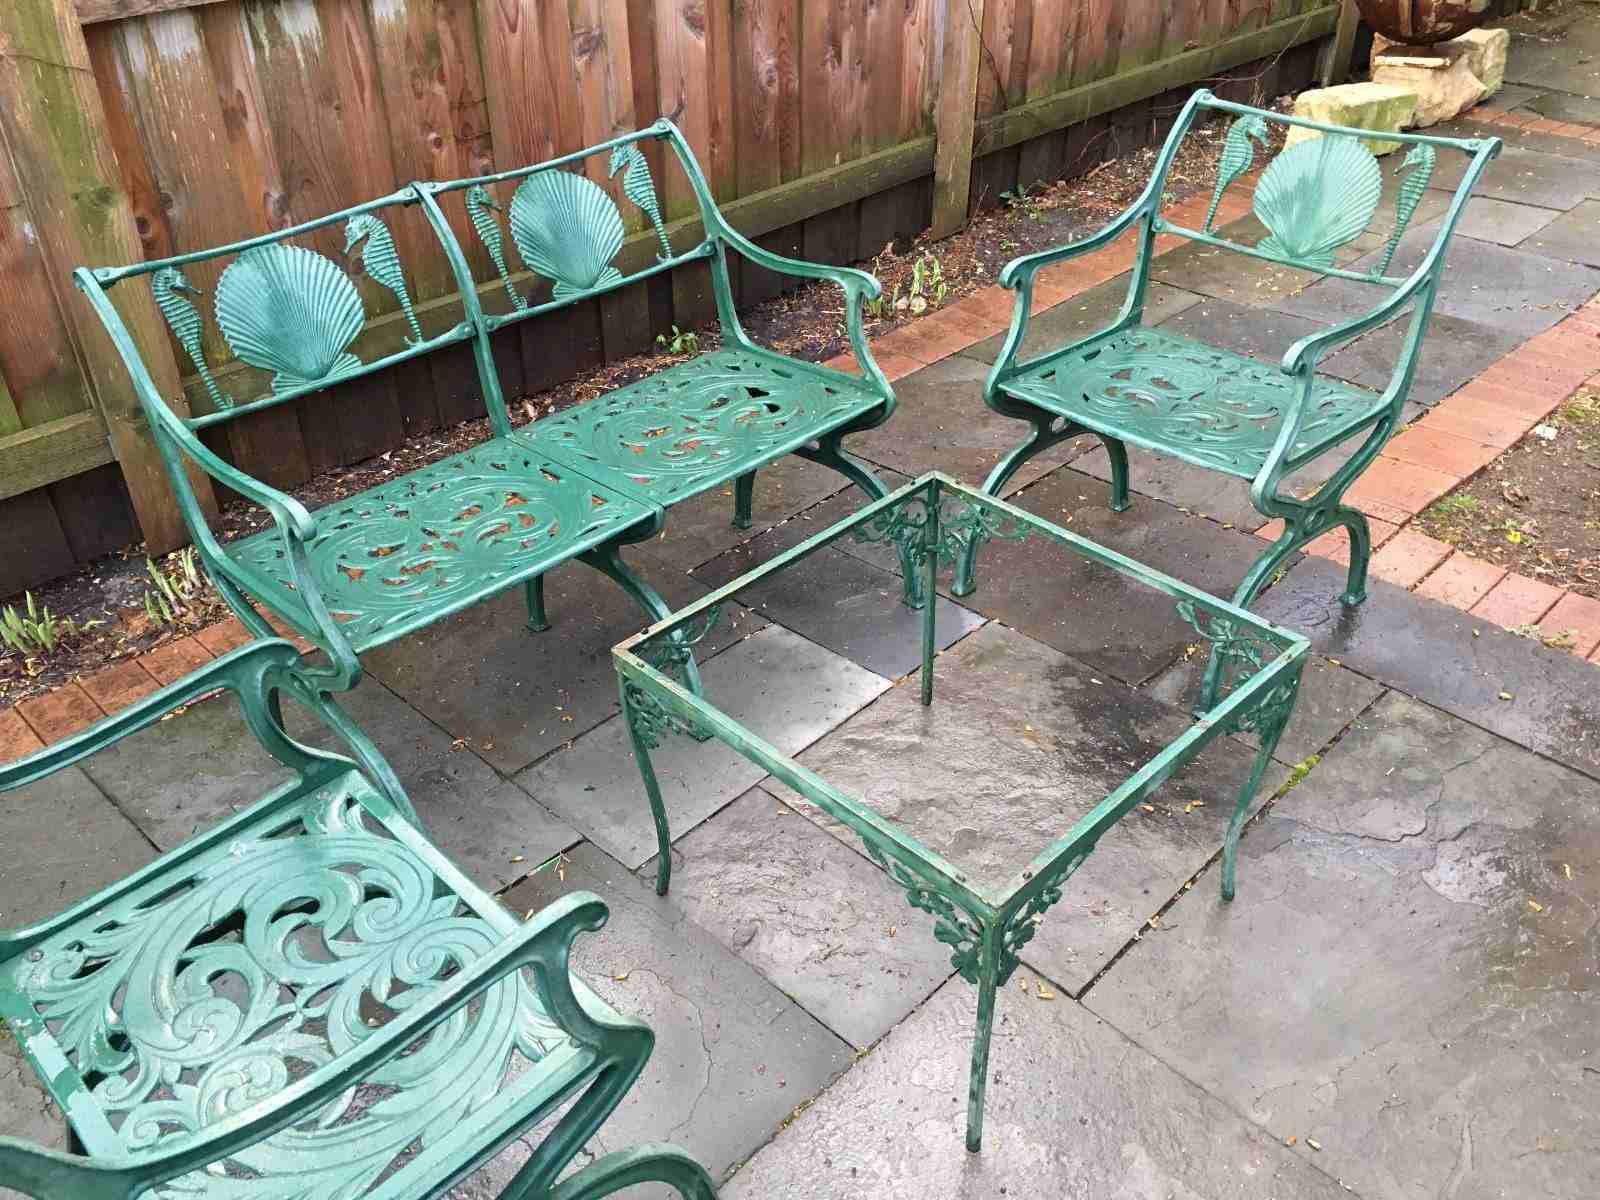 A Guide To Buying Vintage Patio Furniture Regarding 2 Person Antique Black Iron Outdoor Swings (View 16 of 25)